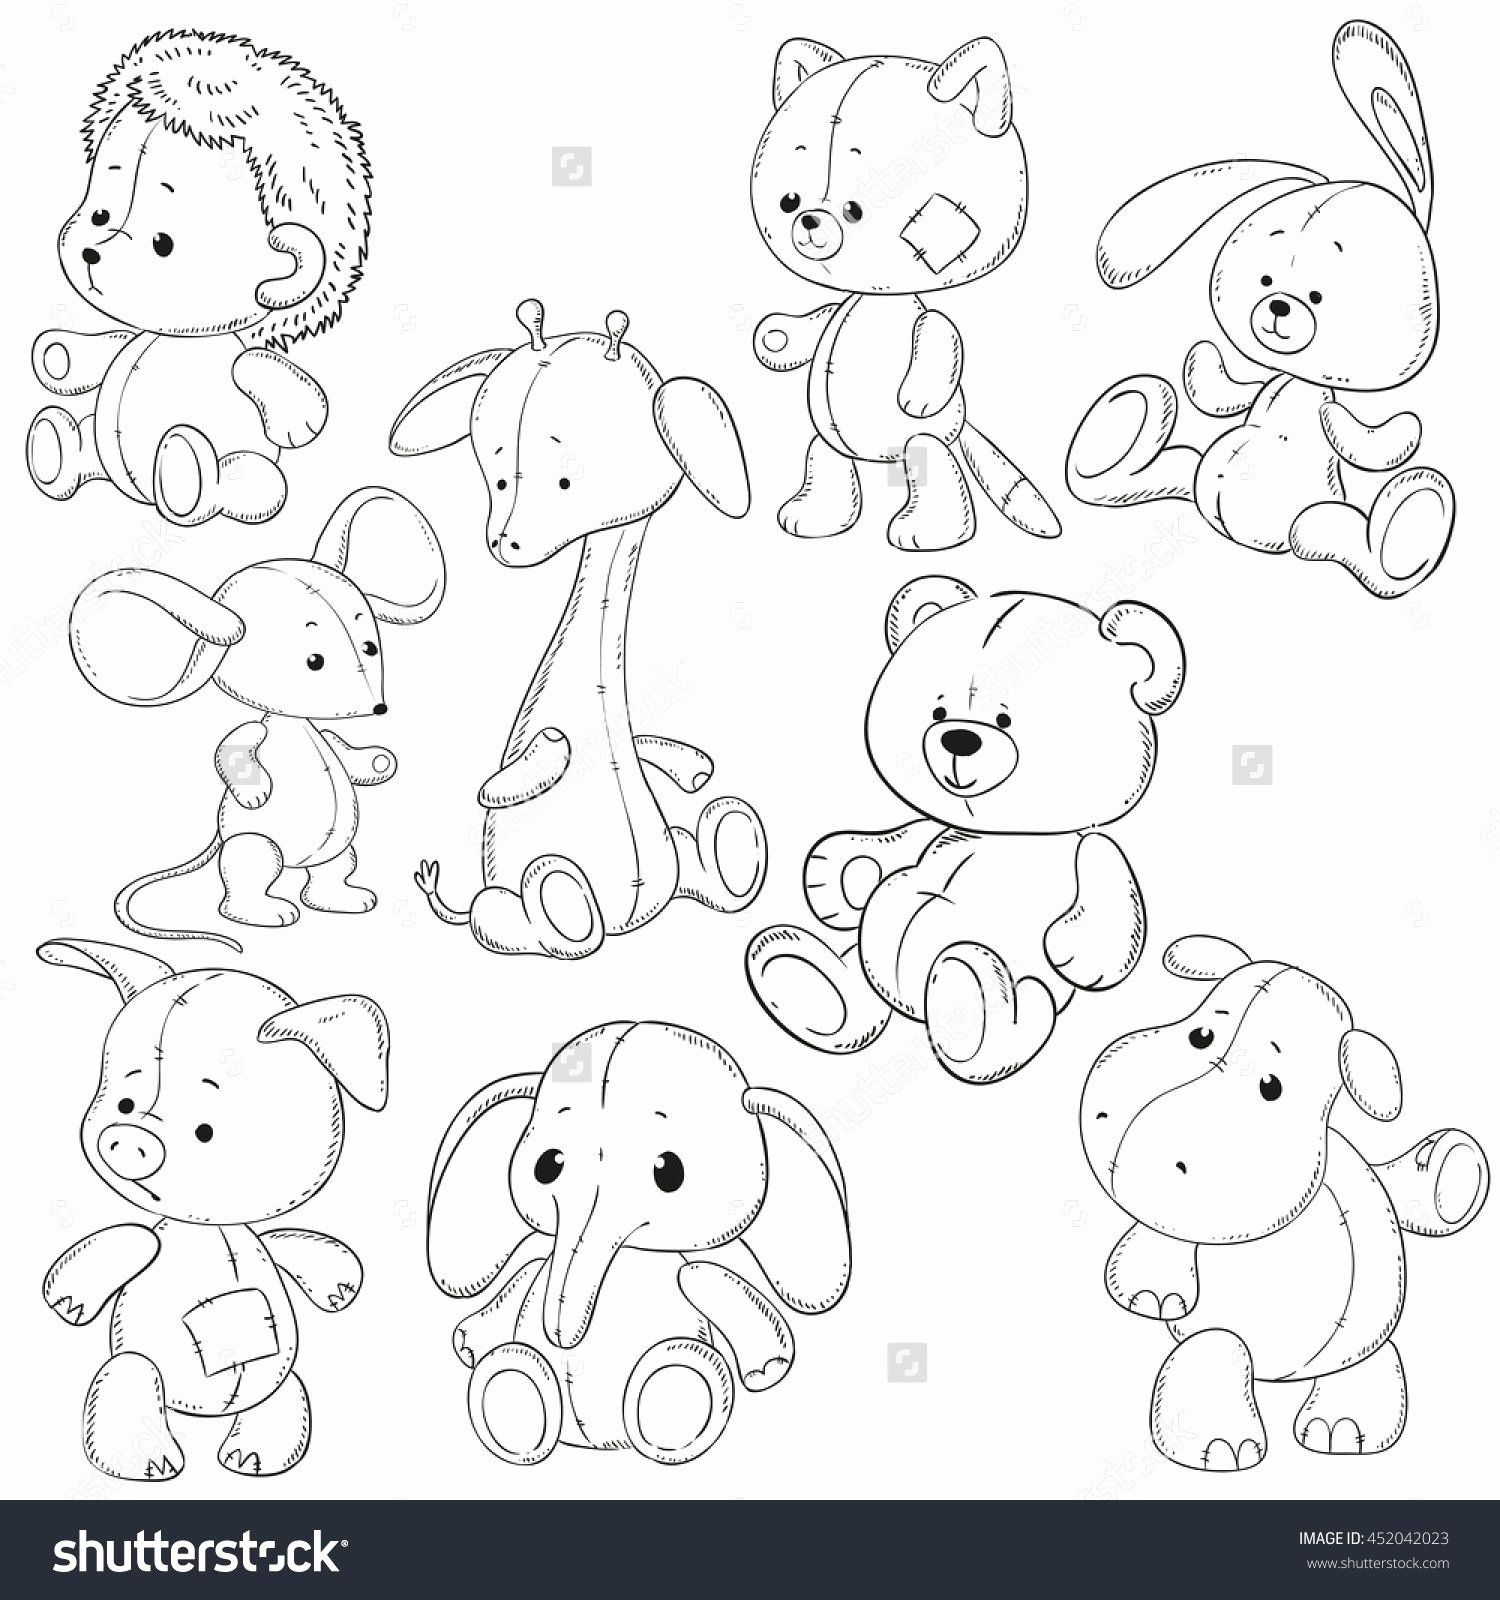 Toys Coloring Book Pdf Inspirational Collection Wolf Stuffed Animal Coloring Pages Cute Animal Drawings Animal Drawings Wolf Stuffed Animal